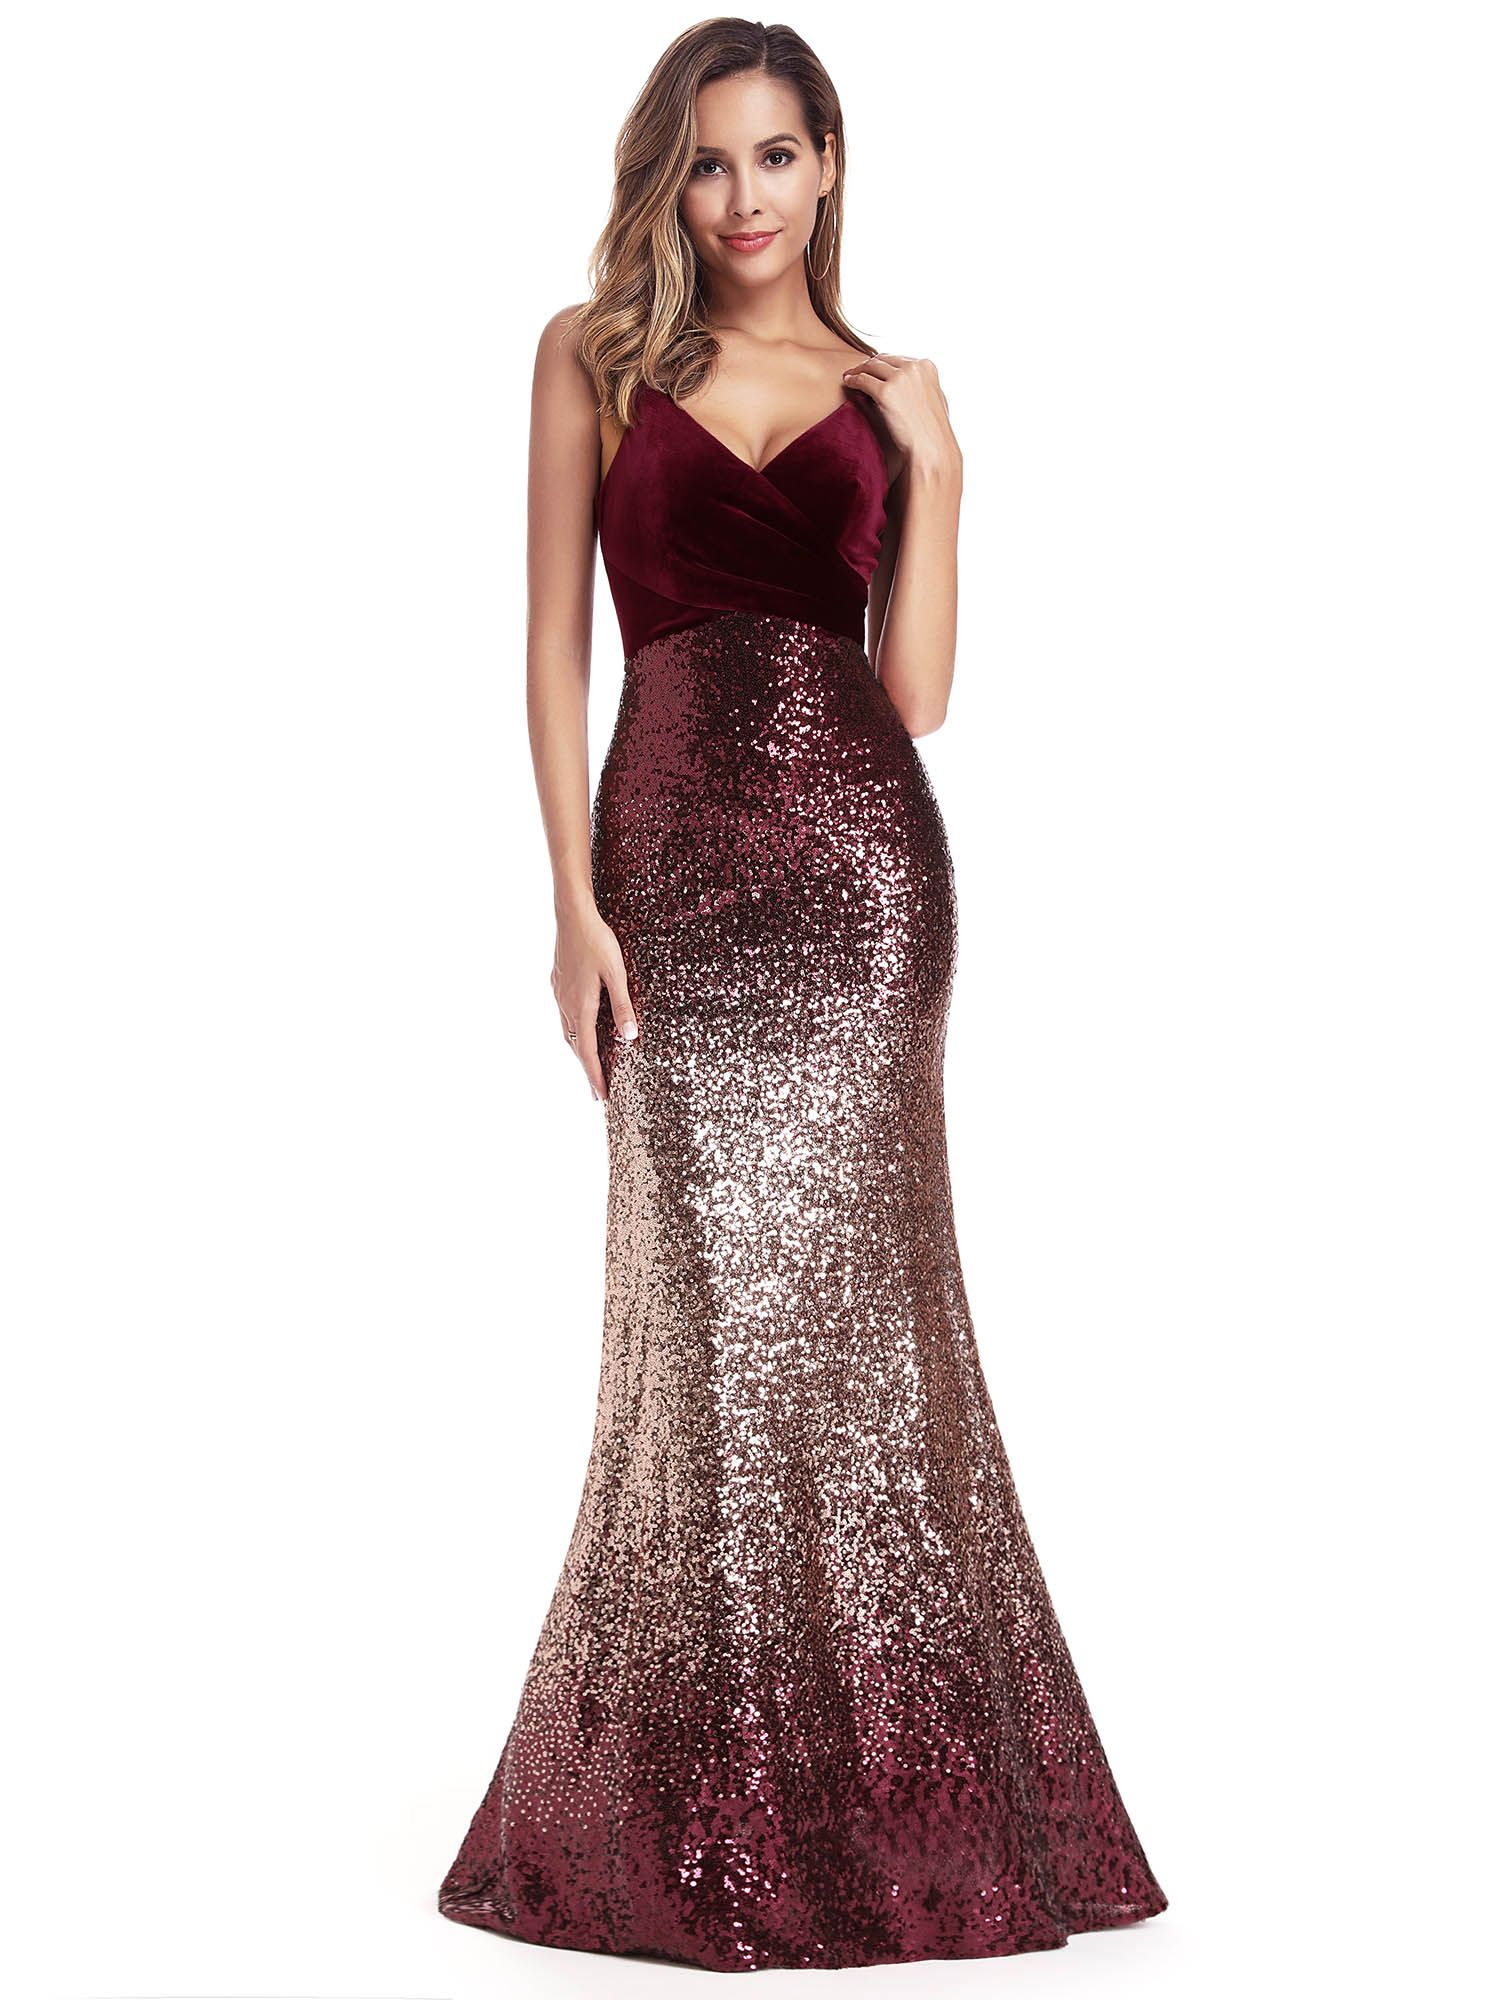 Ever Pretty Ever Pretty Womens Elegant Fitted Prom Dresses For Women 00937 Us4 Walmart Com Affordable Prom Dresses Party Wear Dresses Open Back Prom Dresses [ 2000 x 1500 Pixel ]